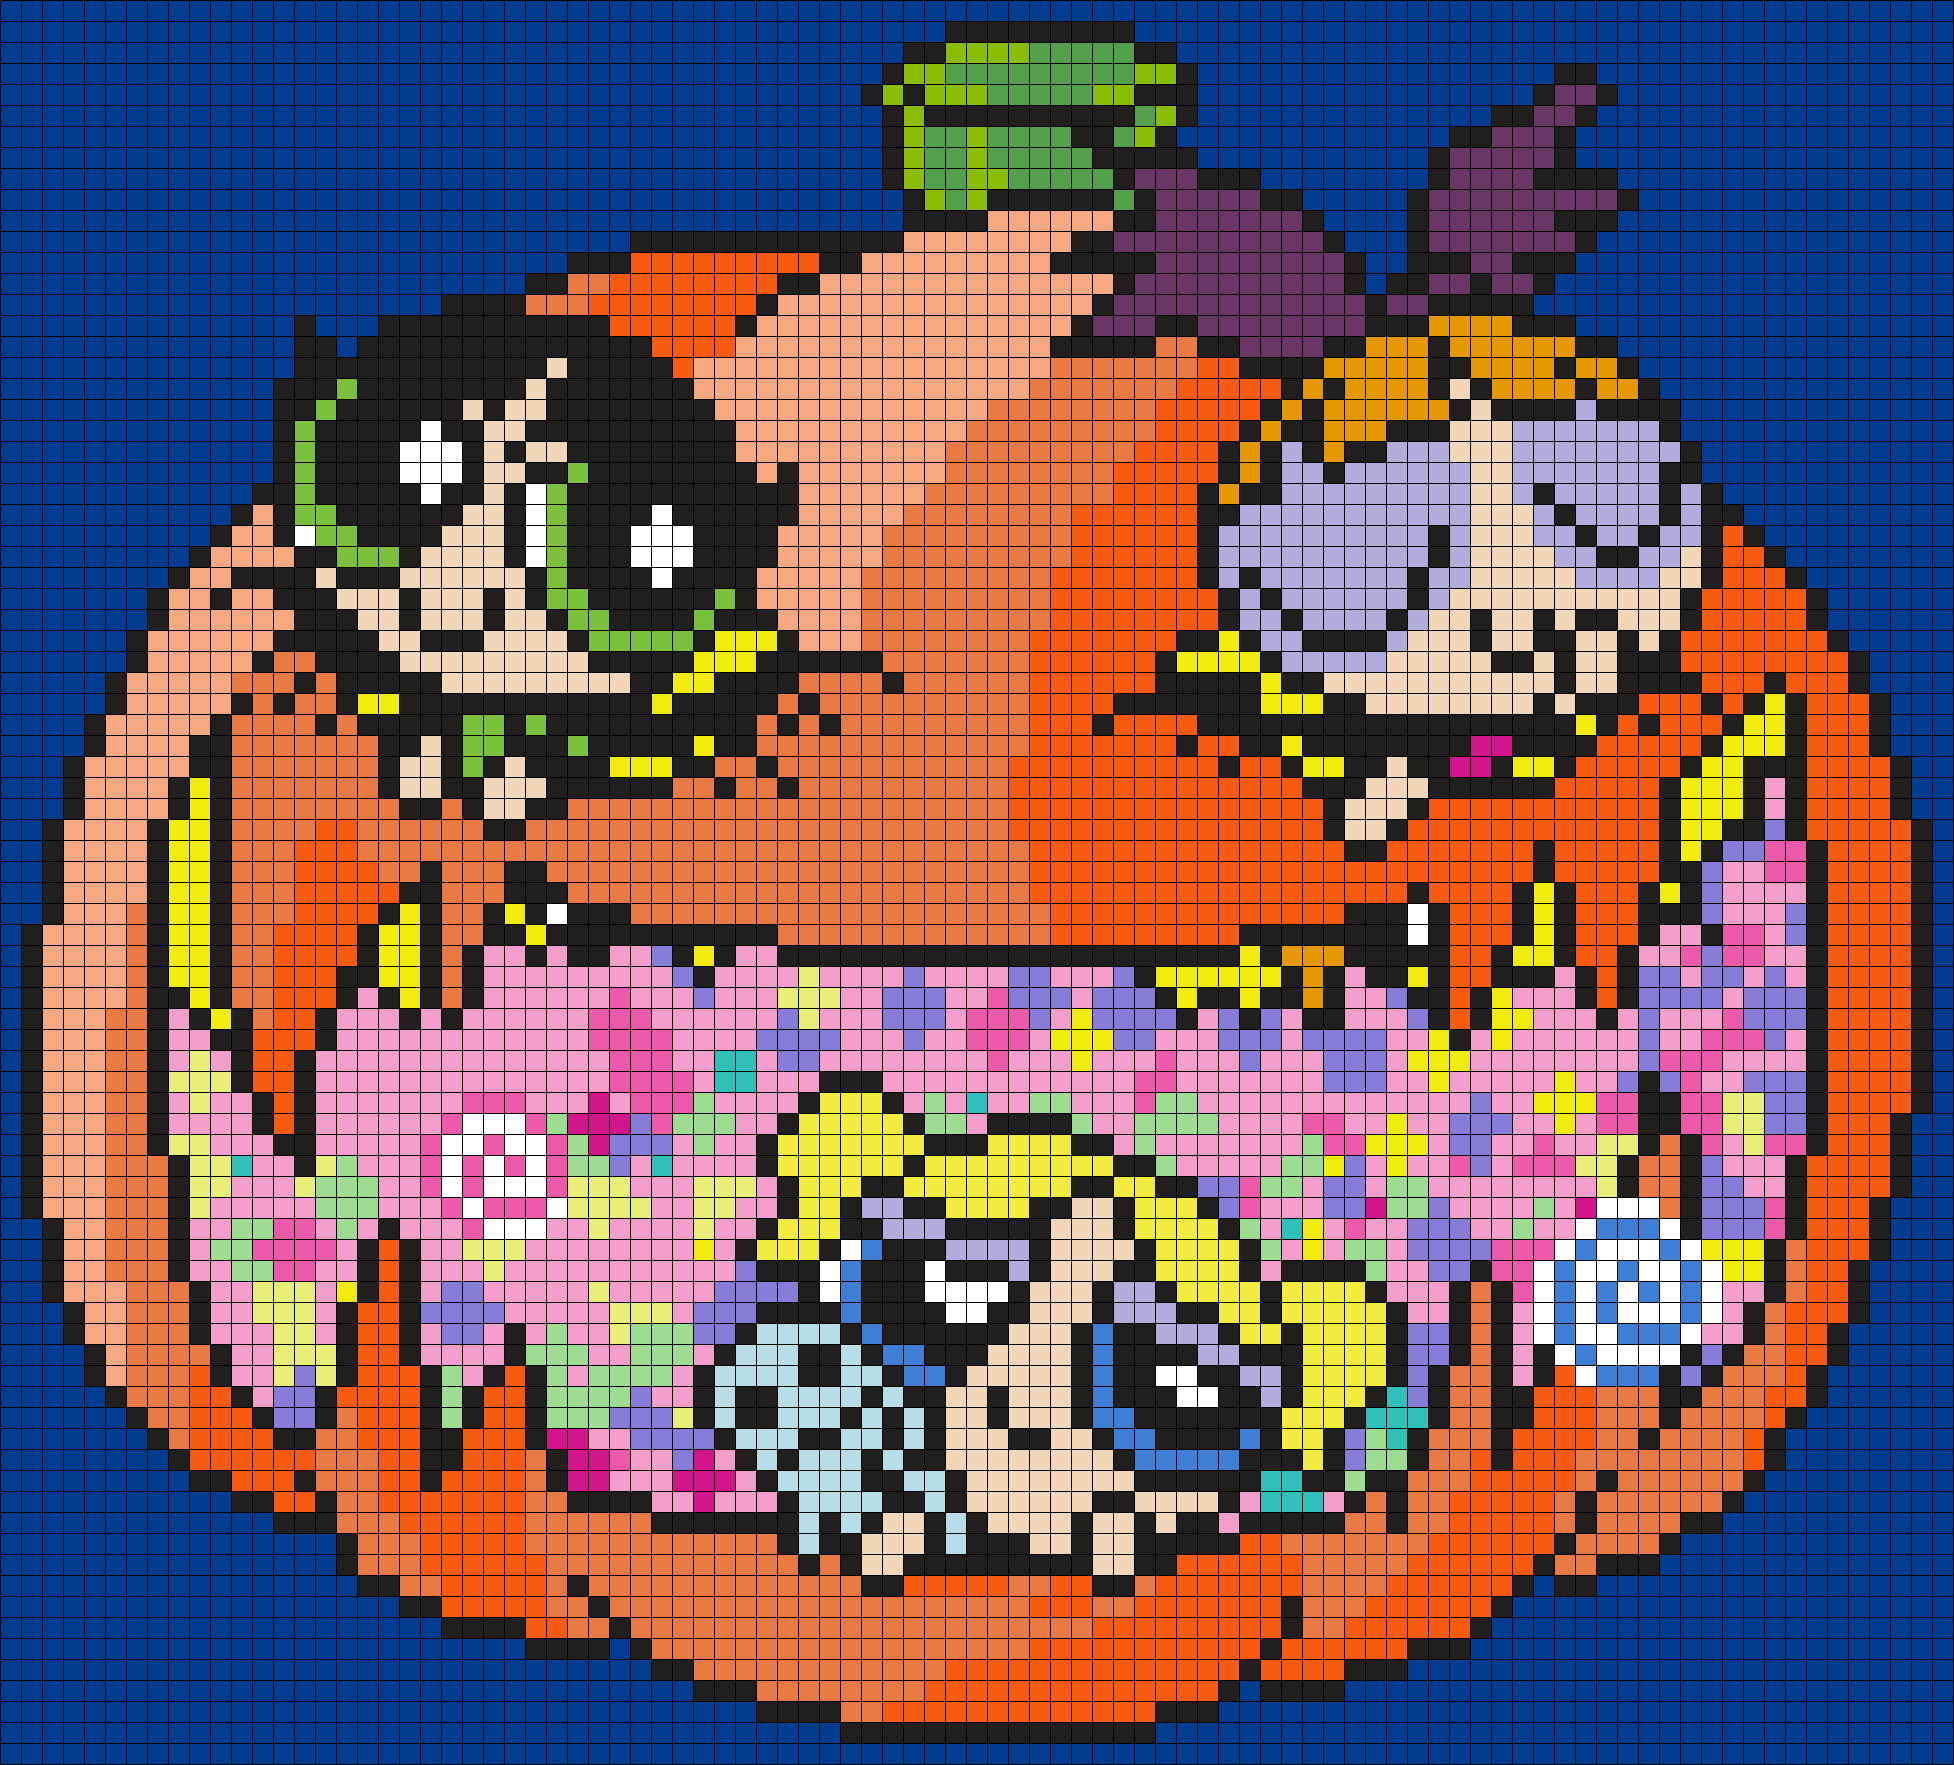 Halloween Powerpuff Girls Poster (Square)